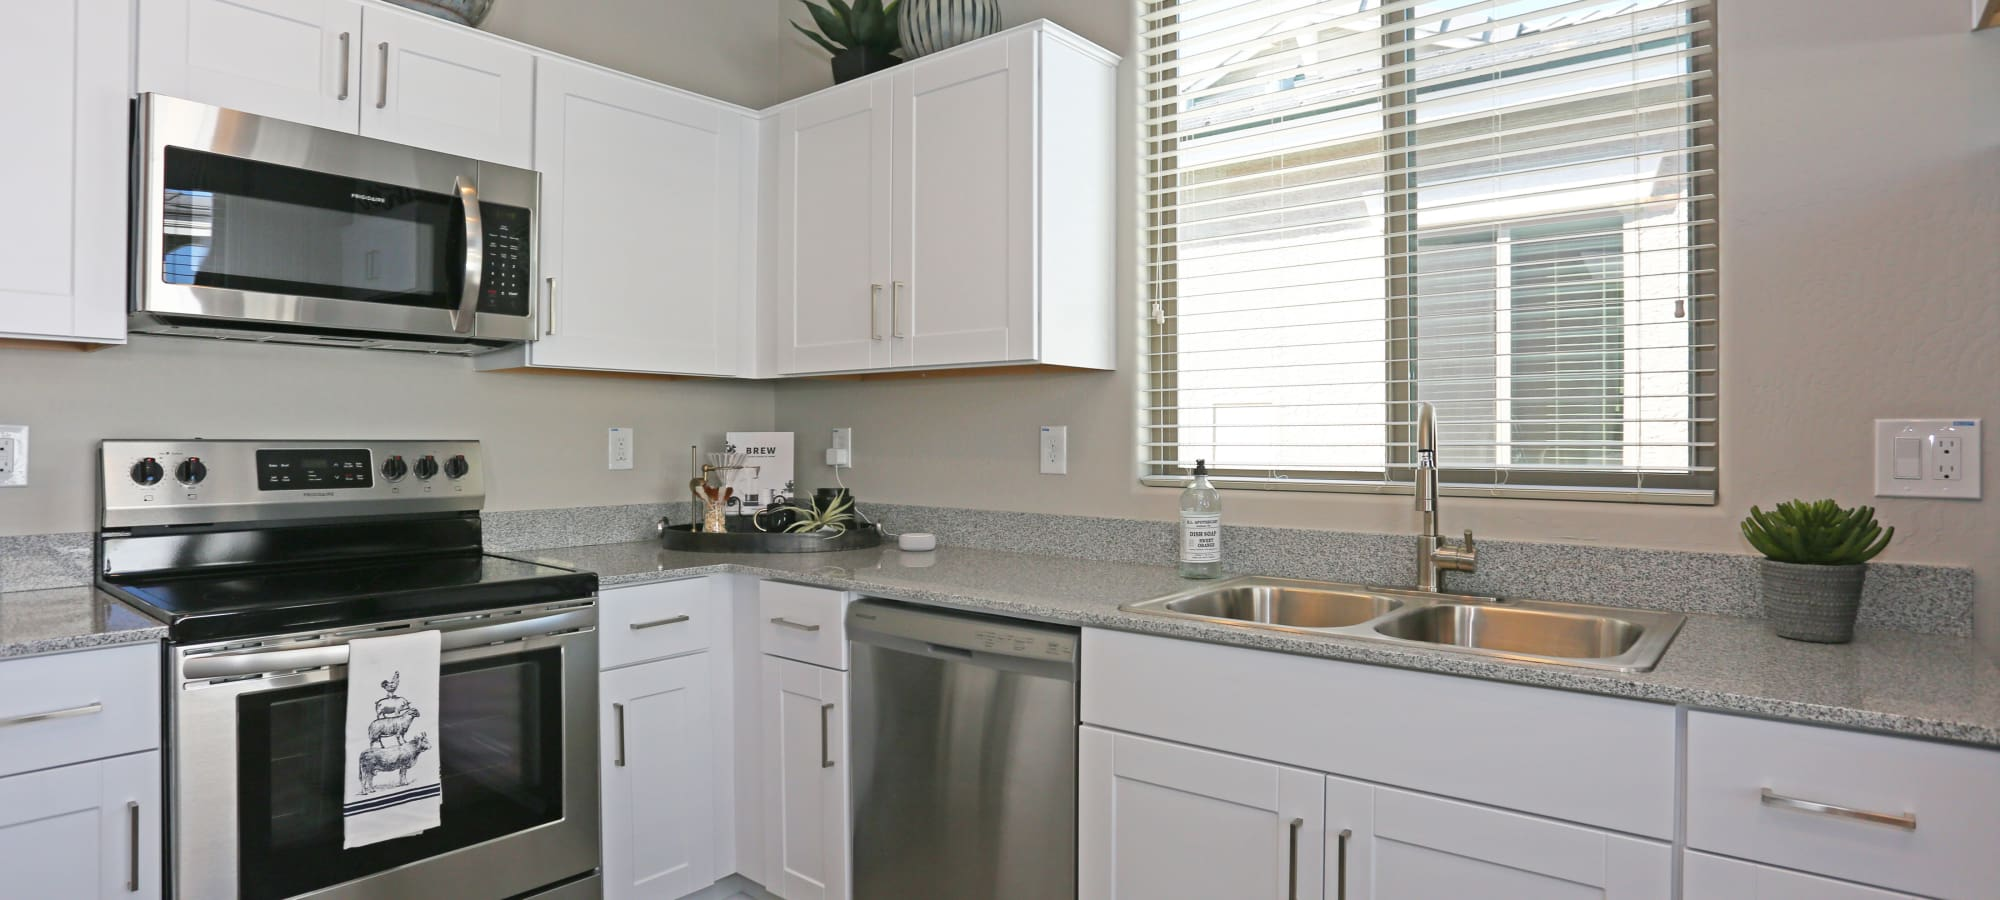 White cabinetry in kitchen of model home at Christopher Todd Communities On Camelback in Litchfield Park, Arizona